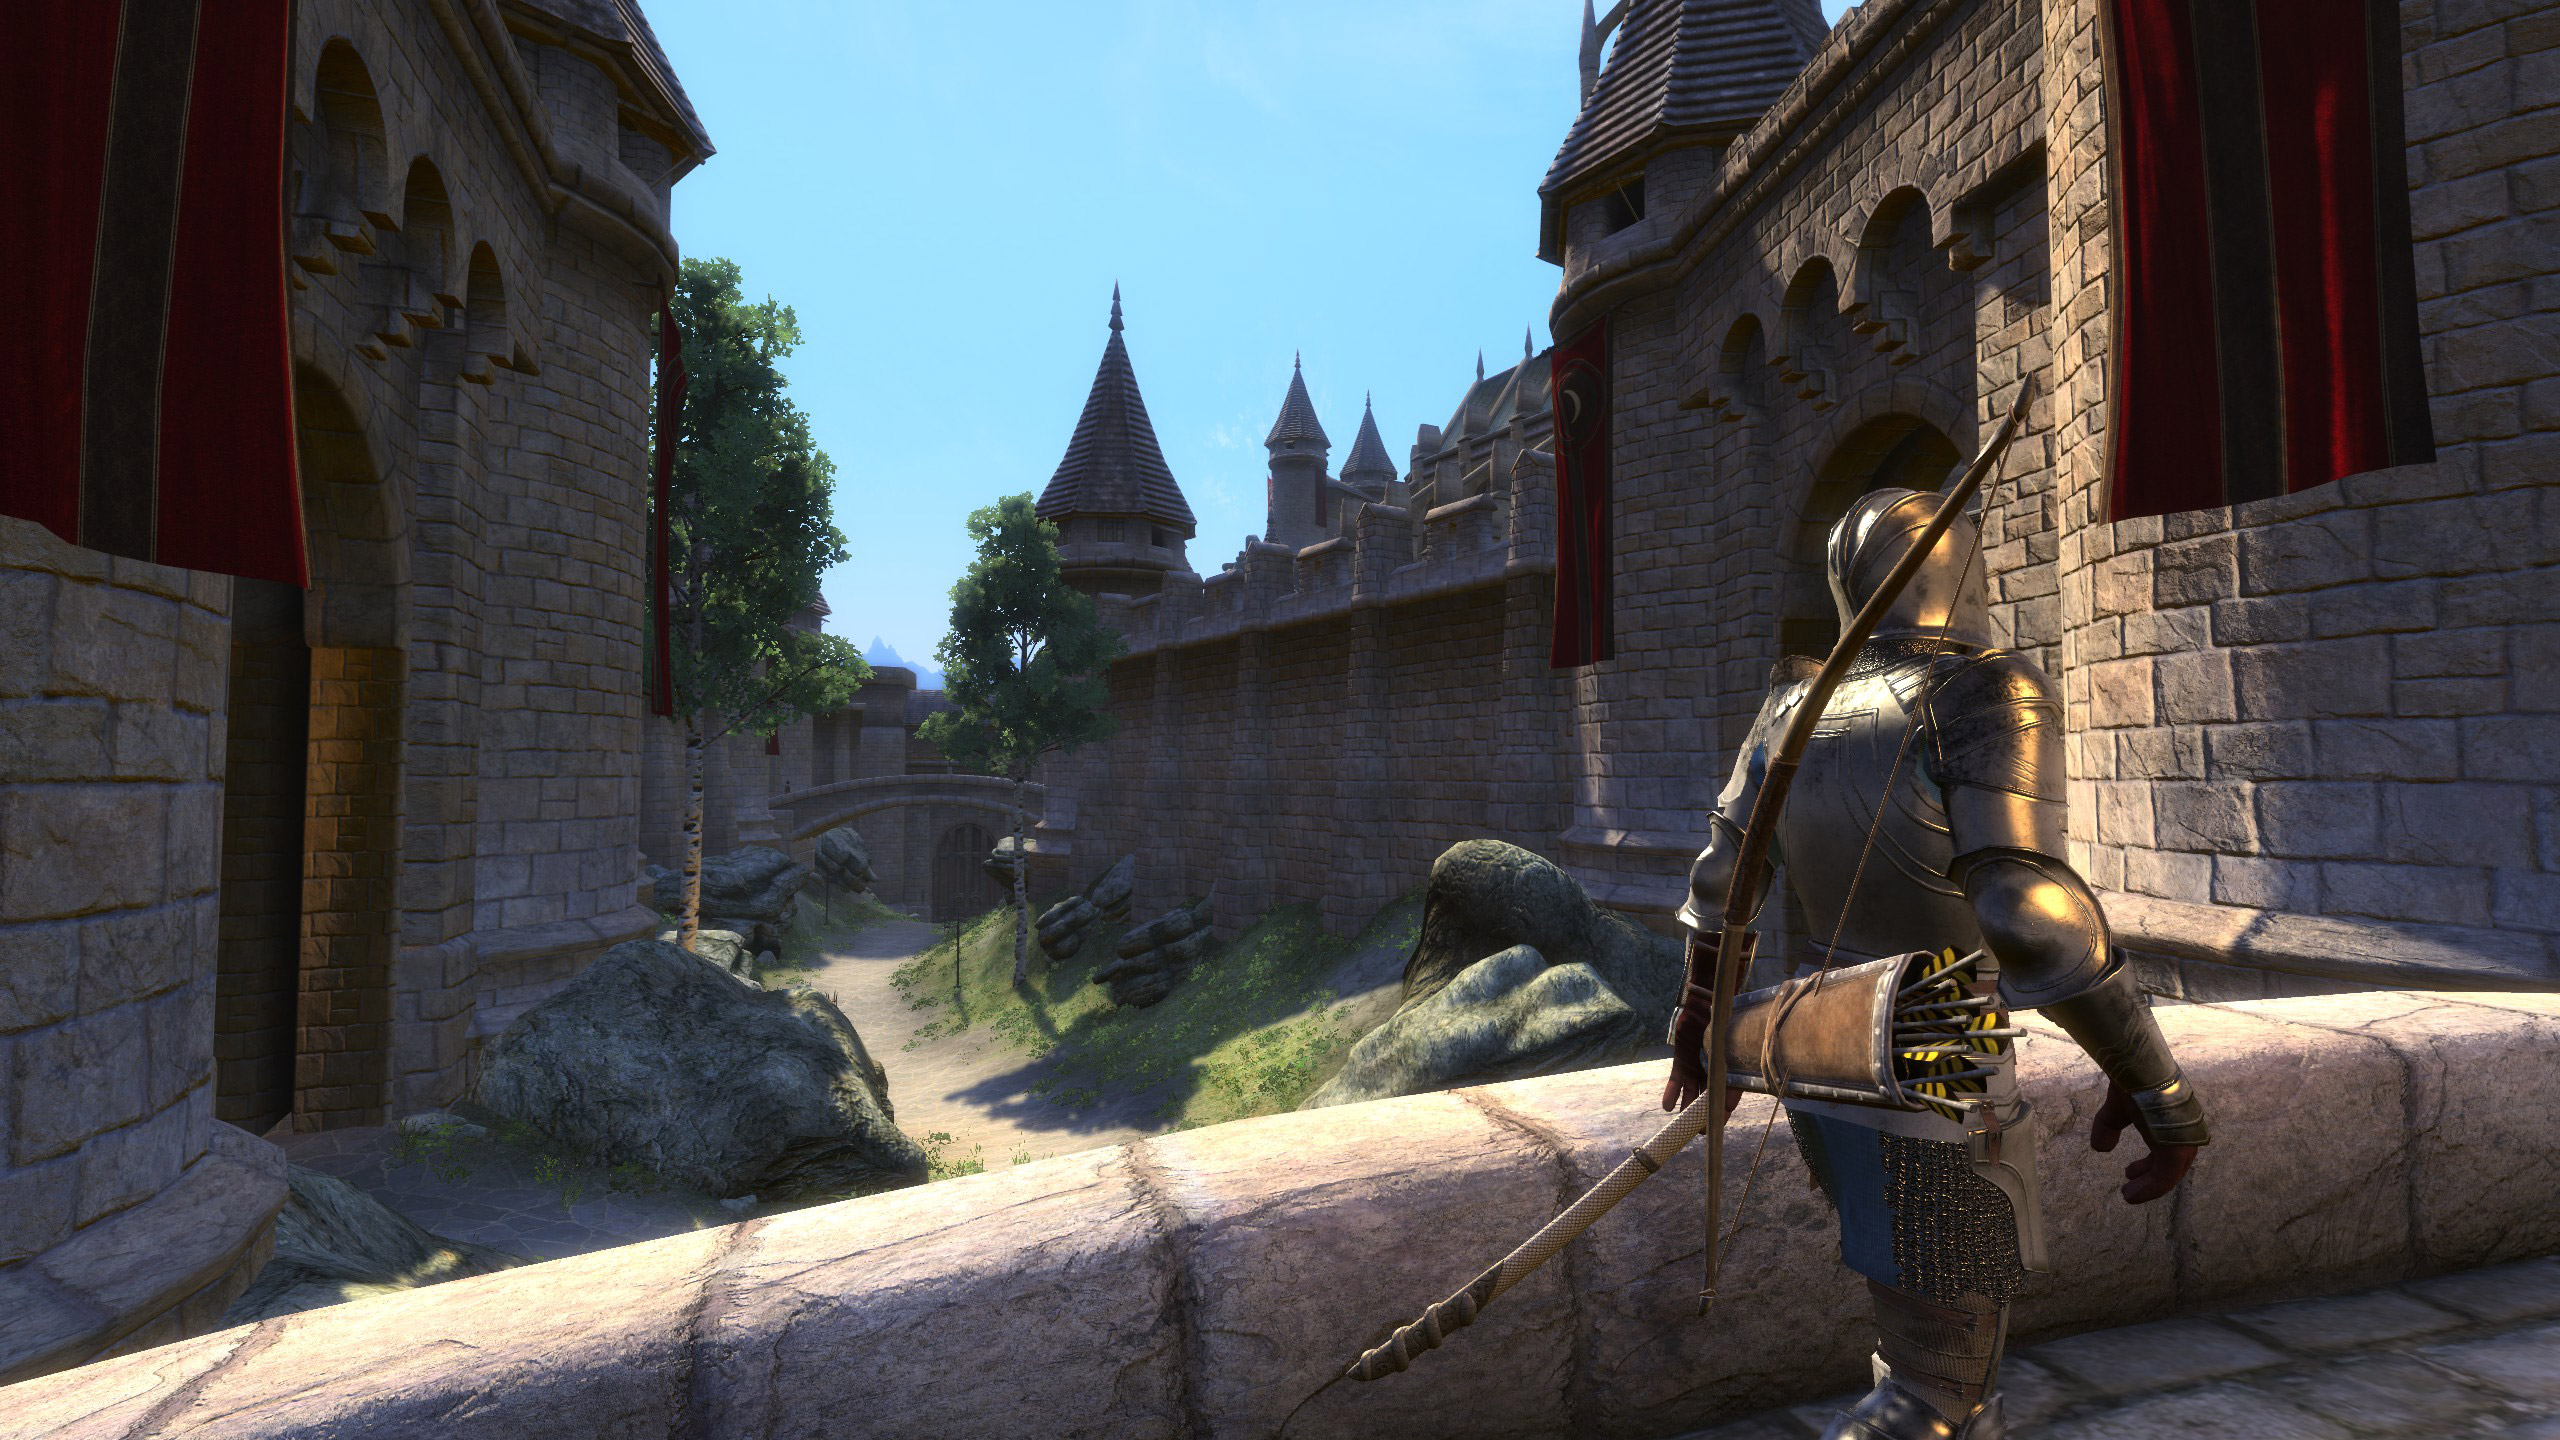 'The end is almost in sight' for Skyblivion, the long-time-coming Oblivion mod for Skyrim screenshot